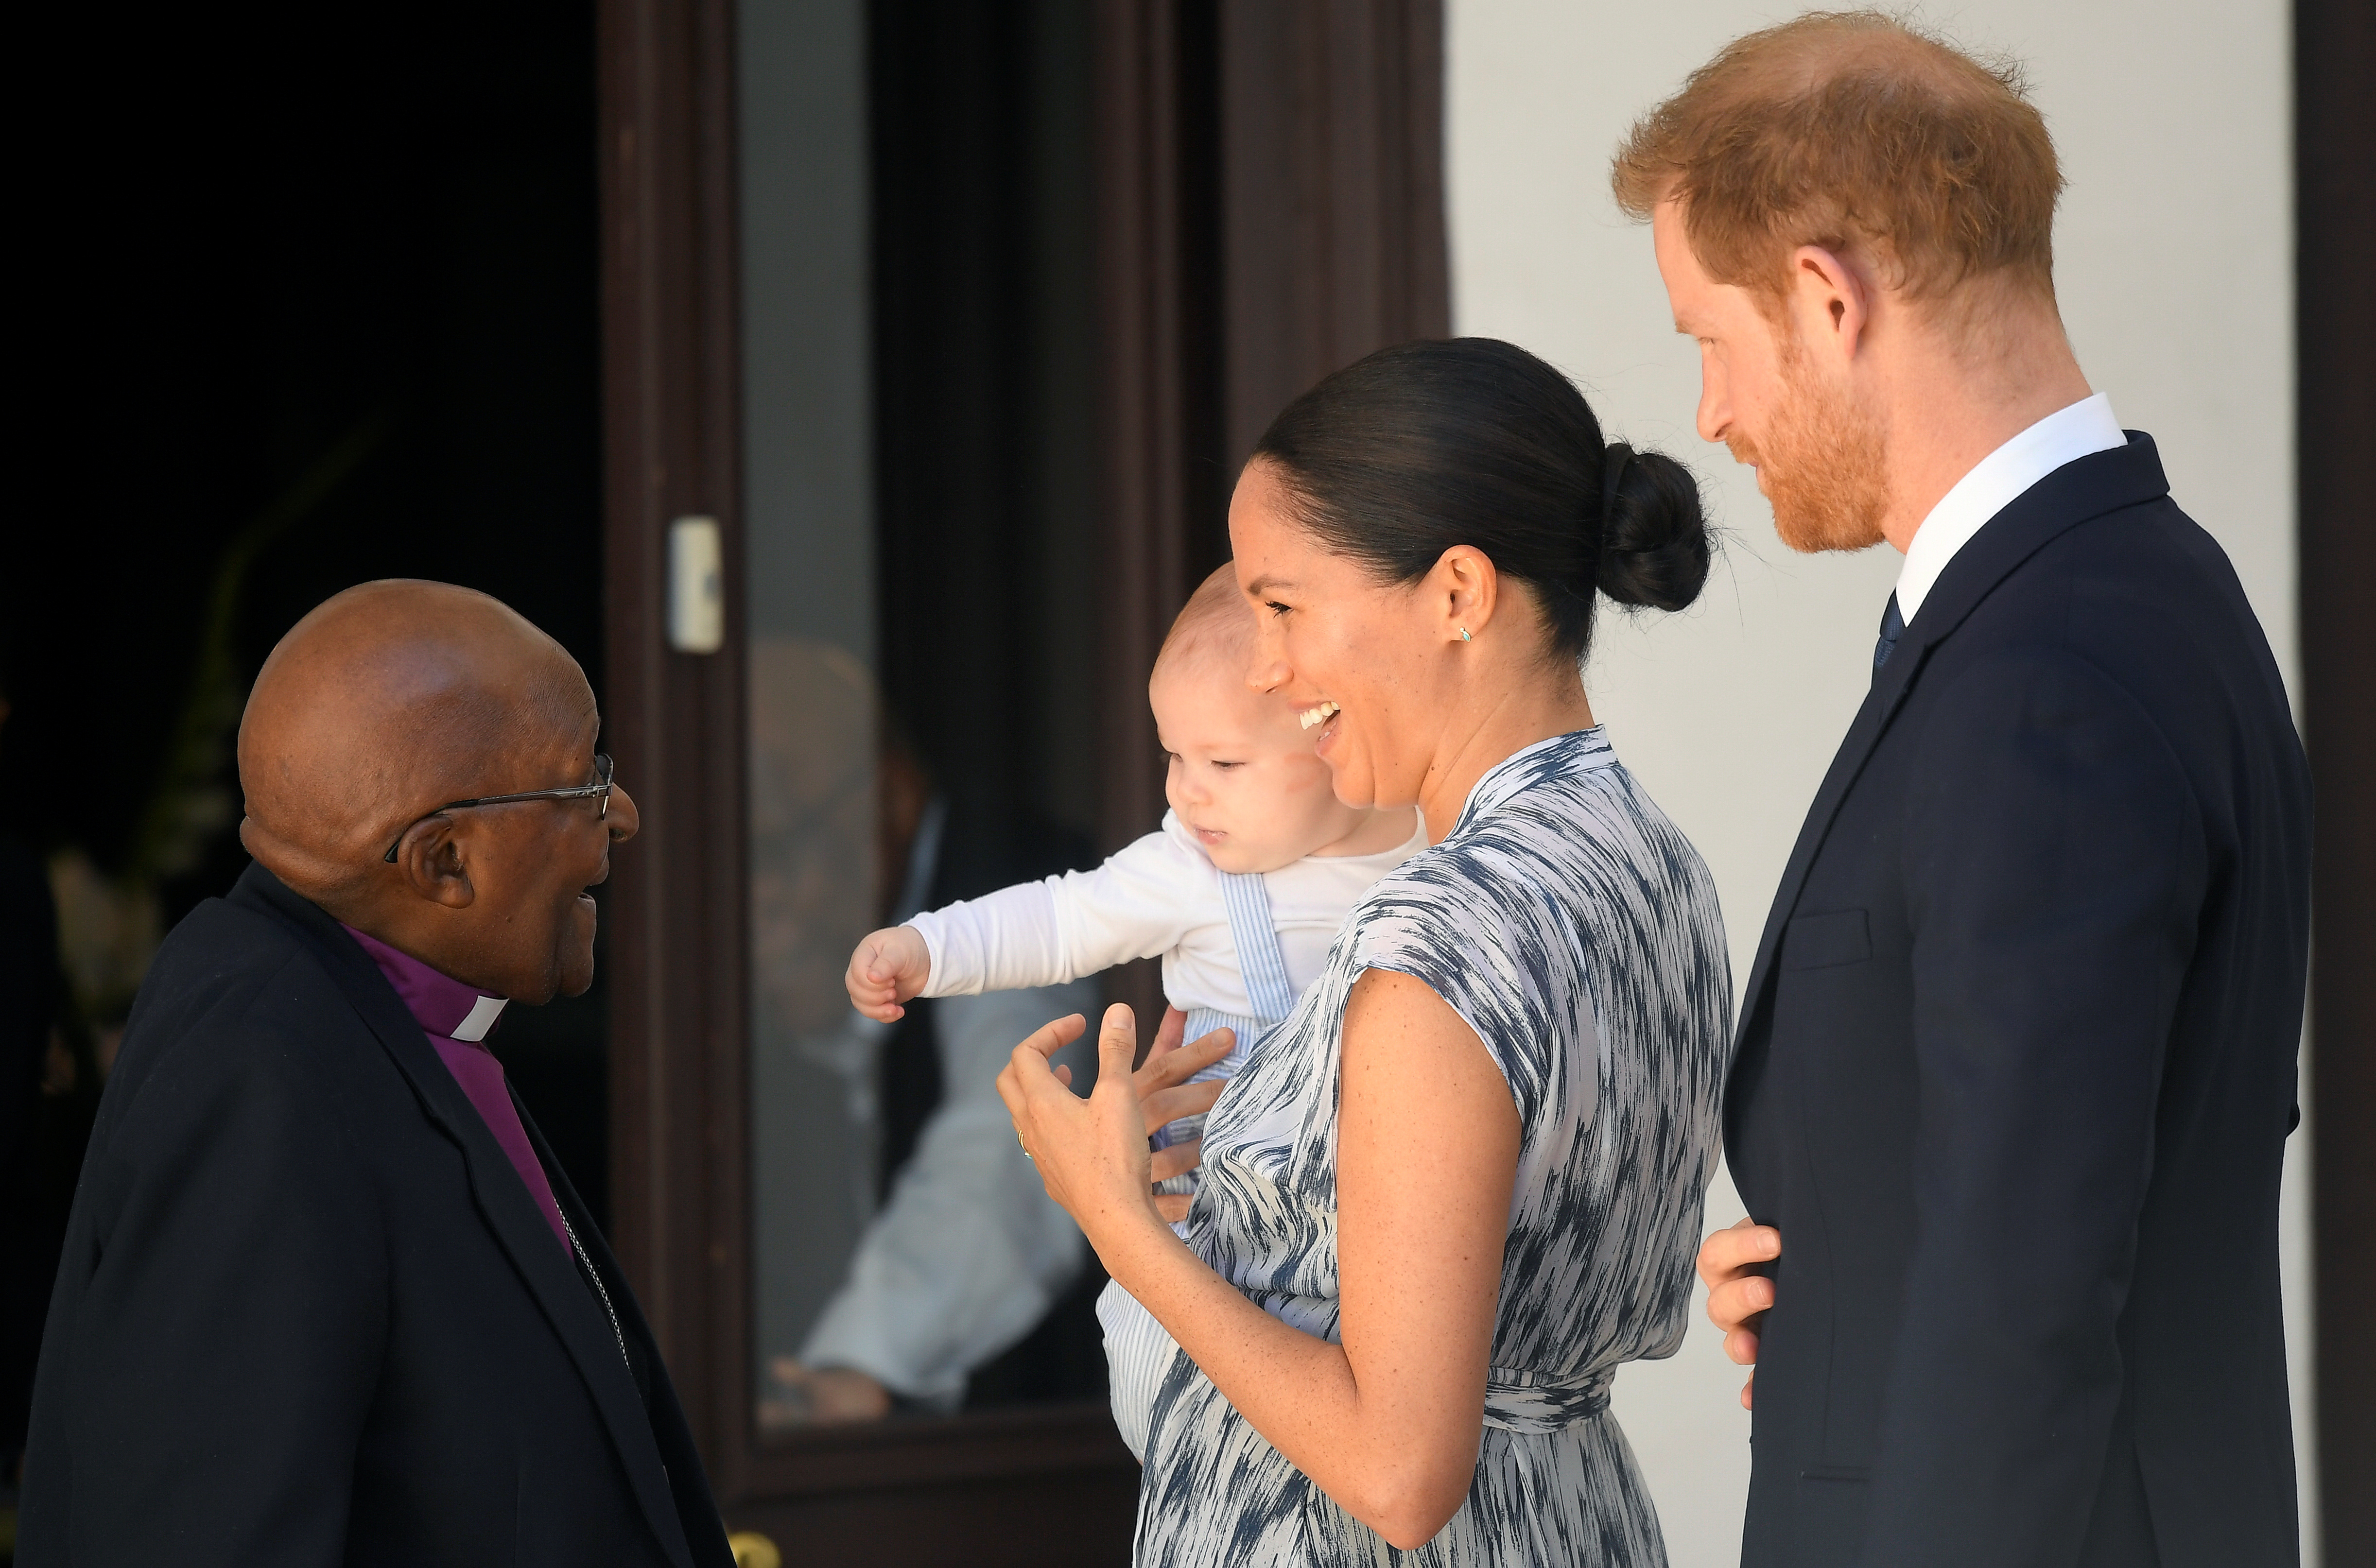 The Duke and Duchess of Sussex along with their son Archie meet with Archbishop Desmond Tutu and Mrs Tutu at their legacy foundation in cape Town, on day three of their tour of Africa.